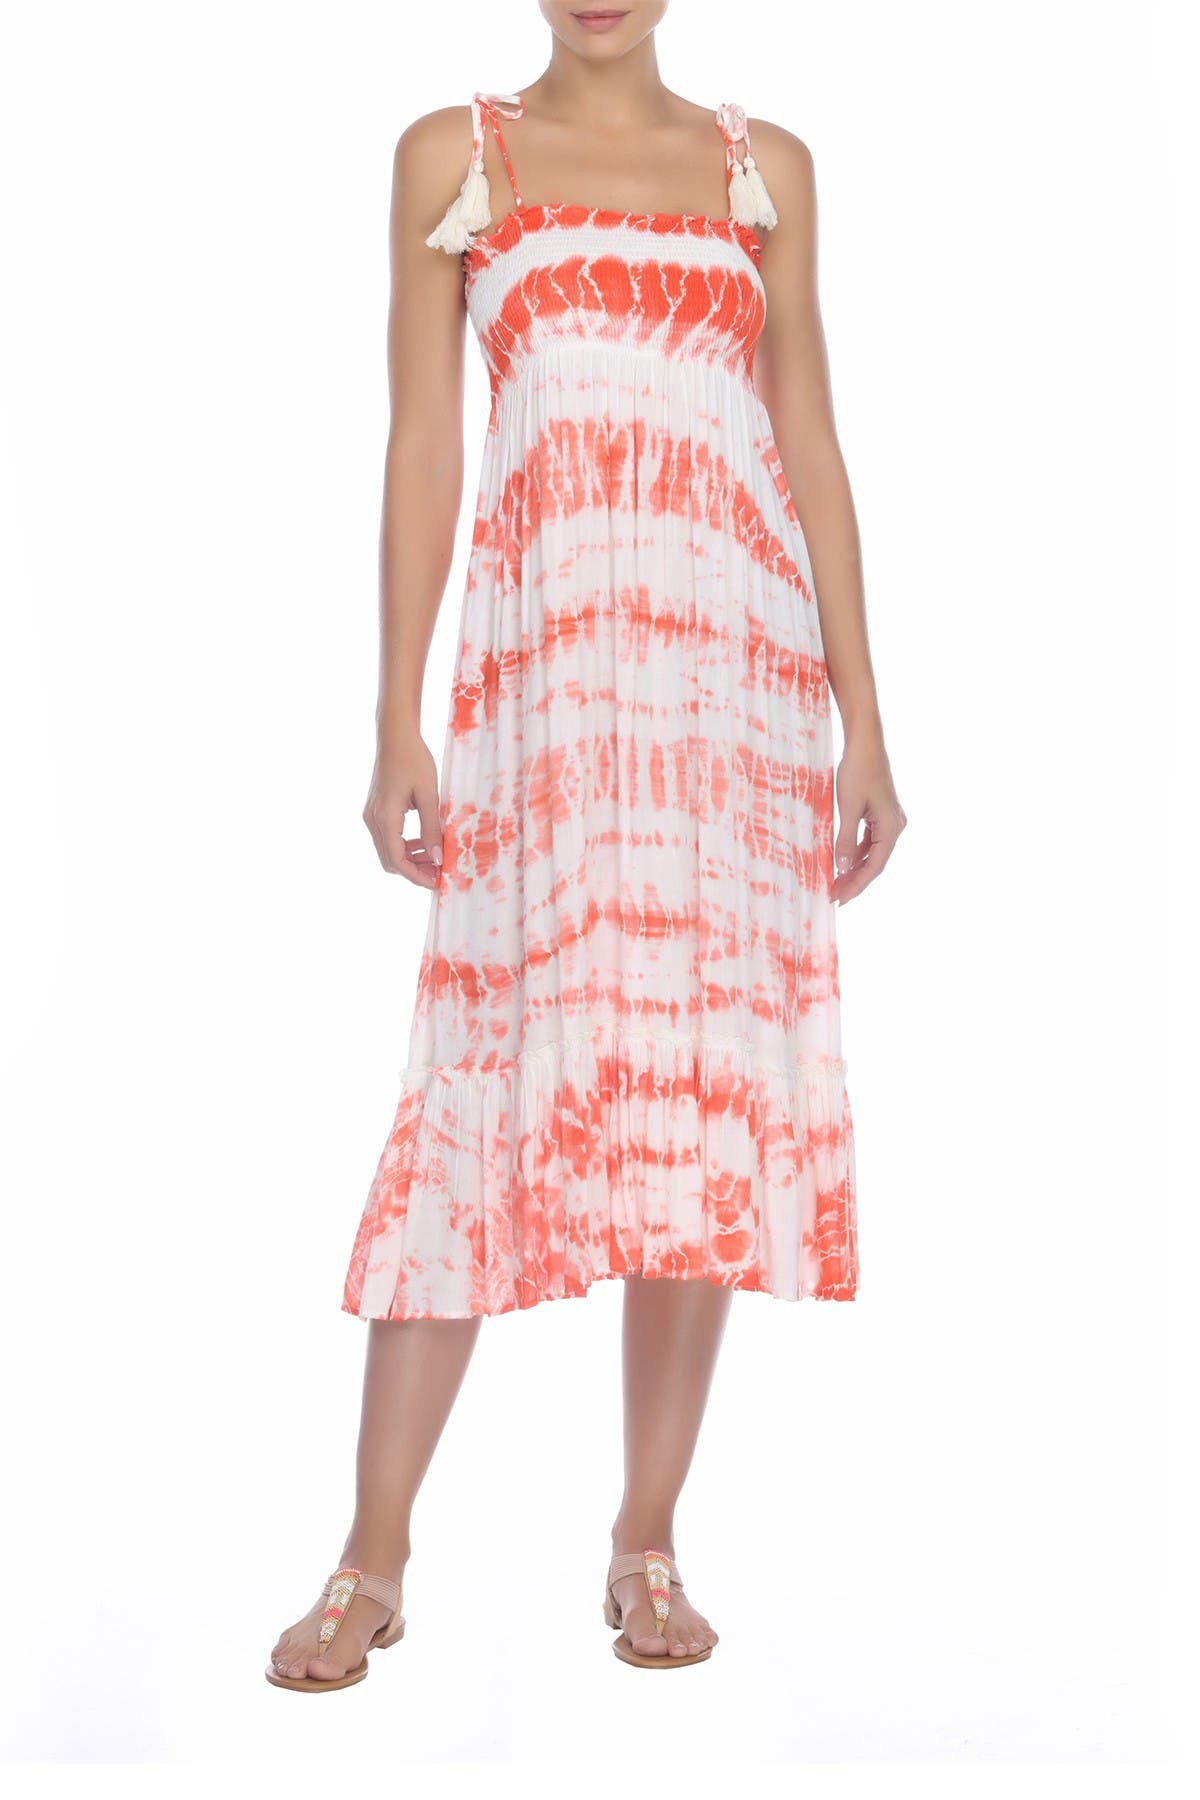 Image of BOHO ME Smocked Tie Dye Midi Dress